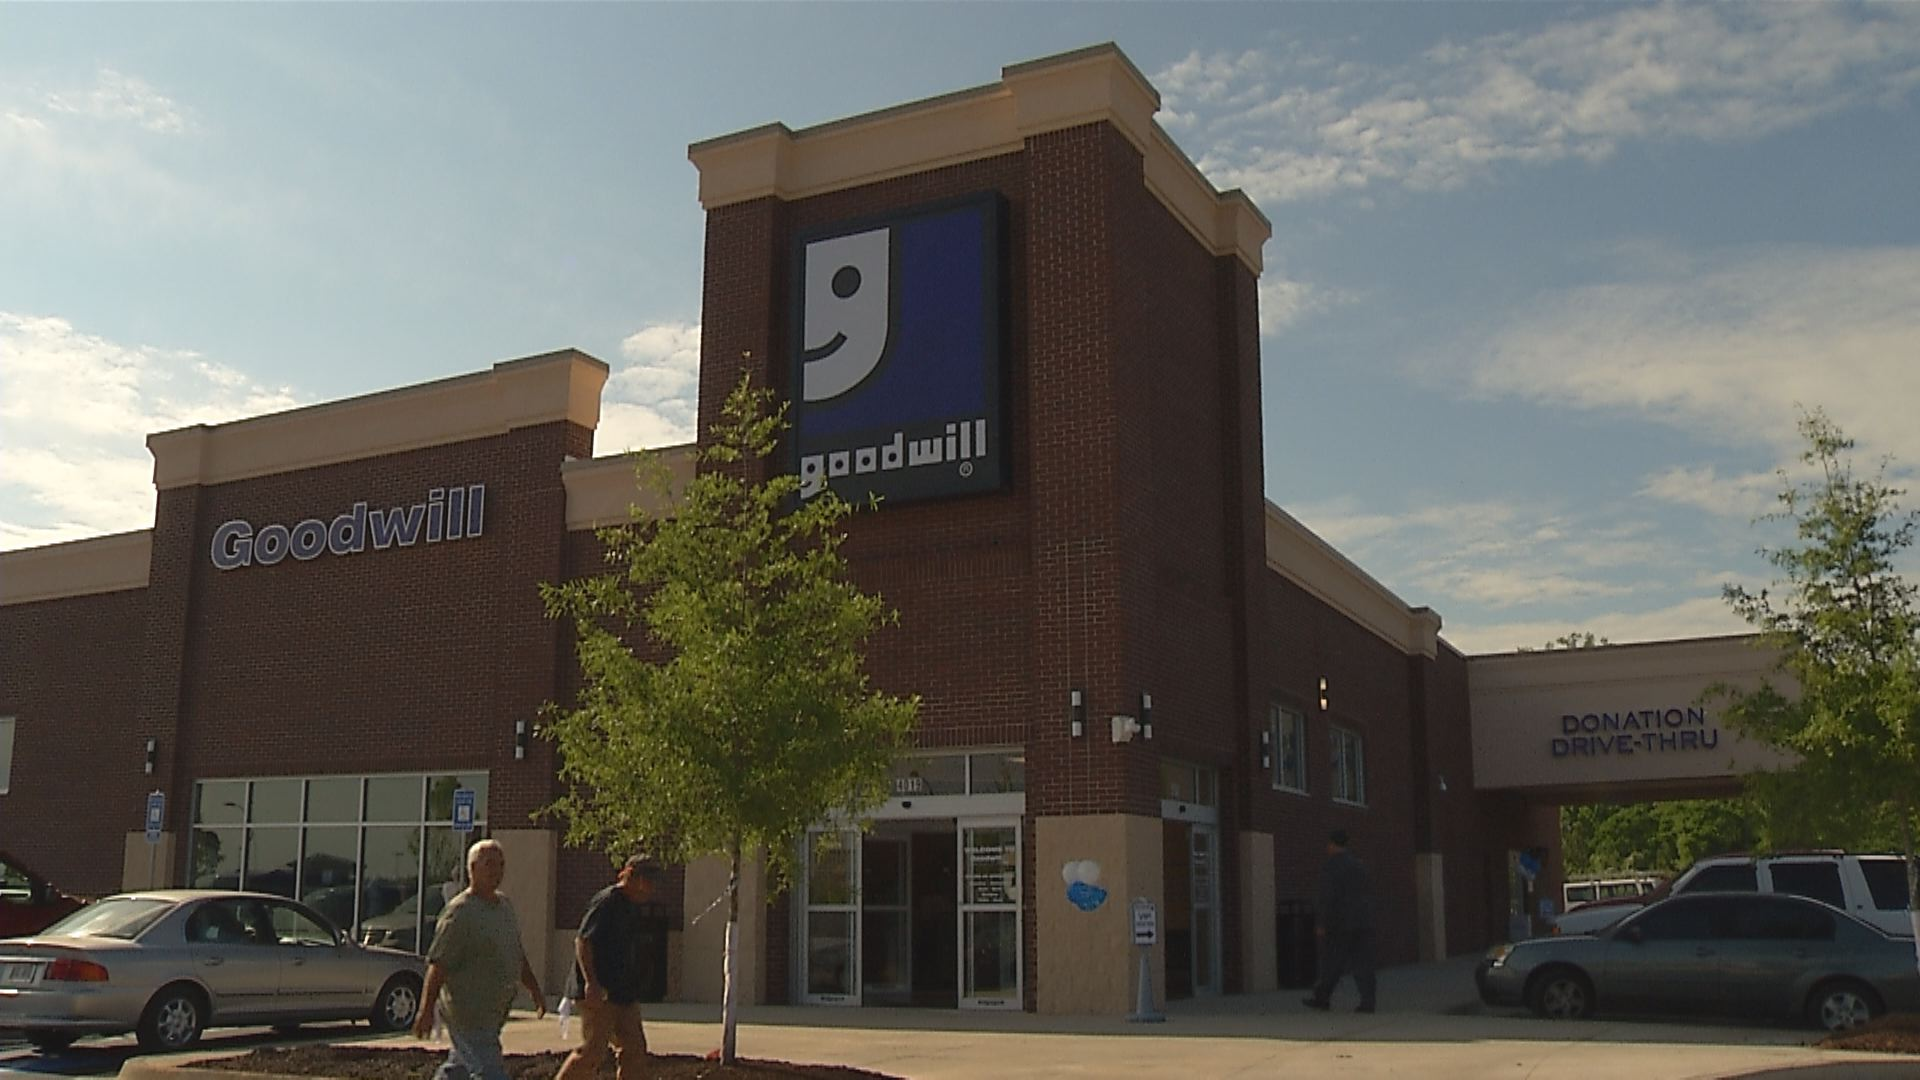 New Grovetown Goodwill Opens Up_146312